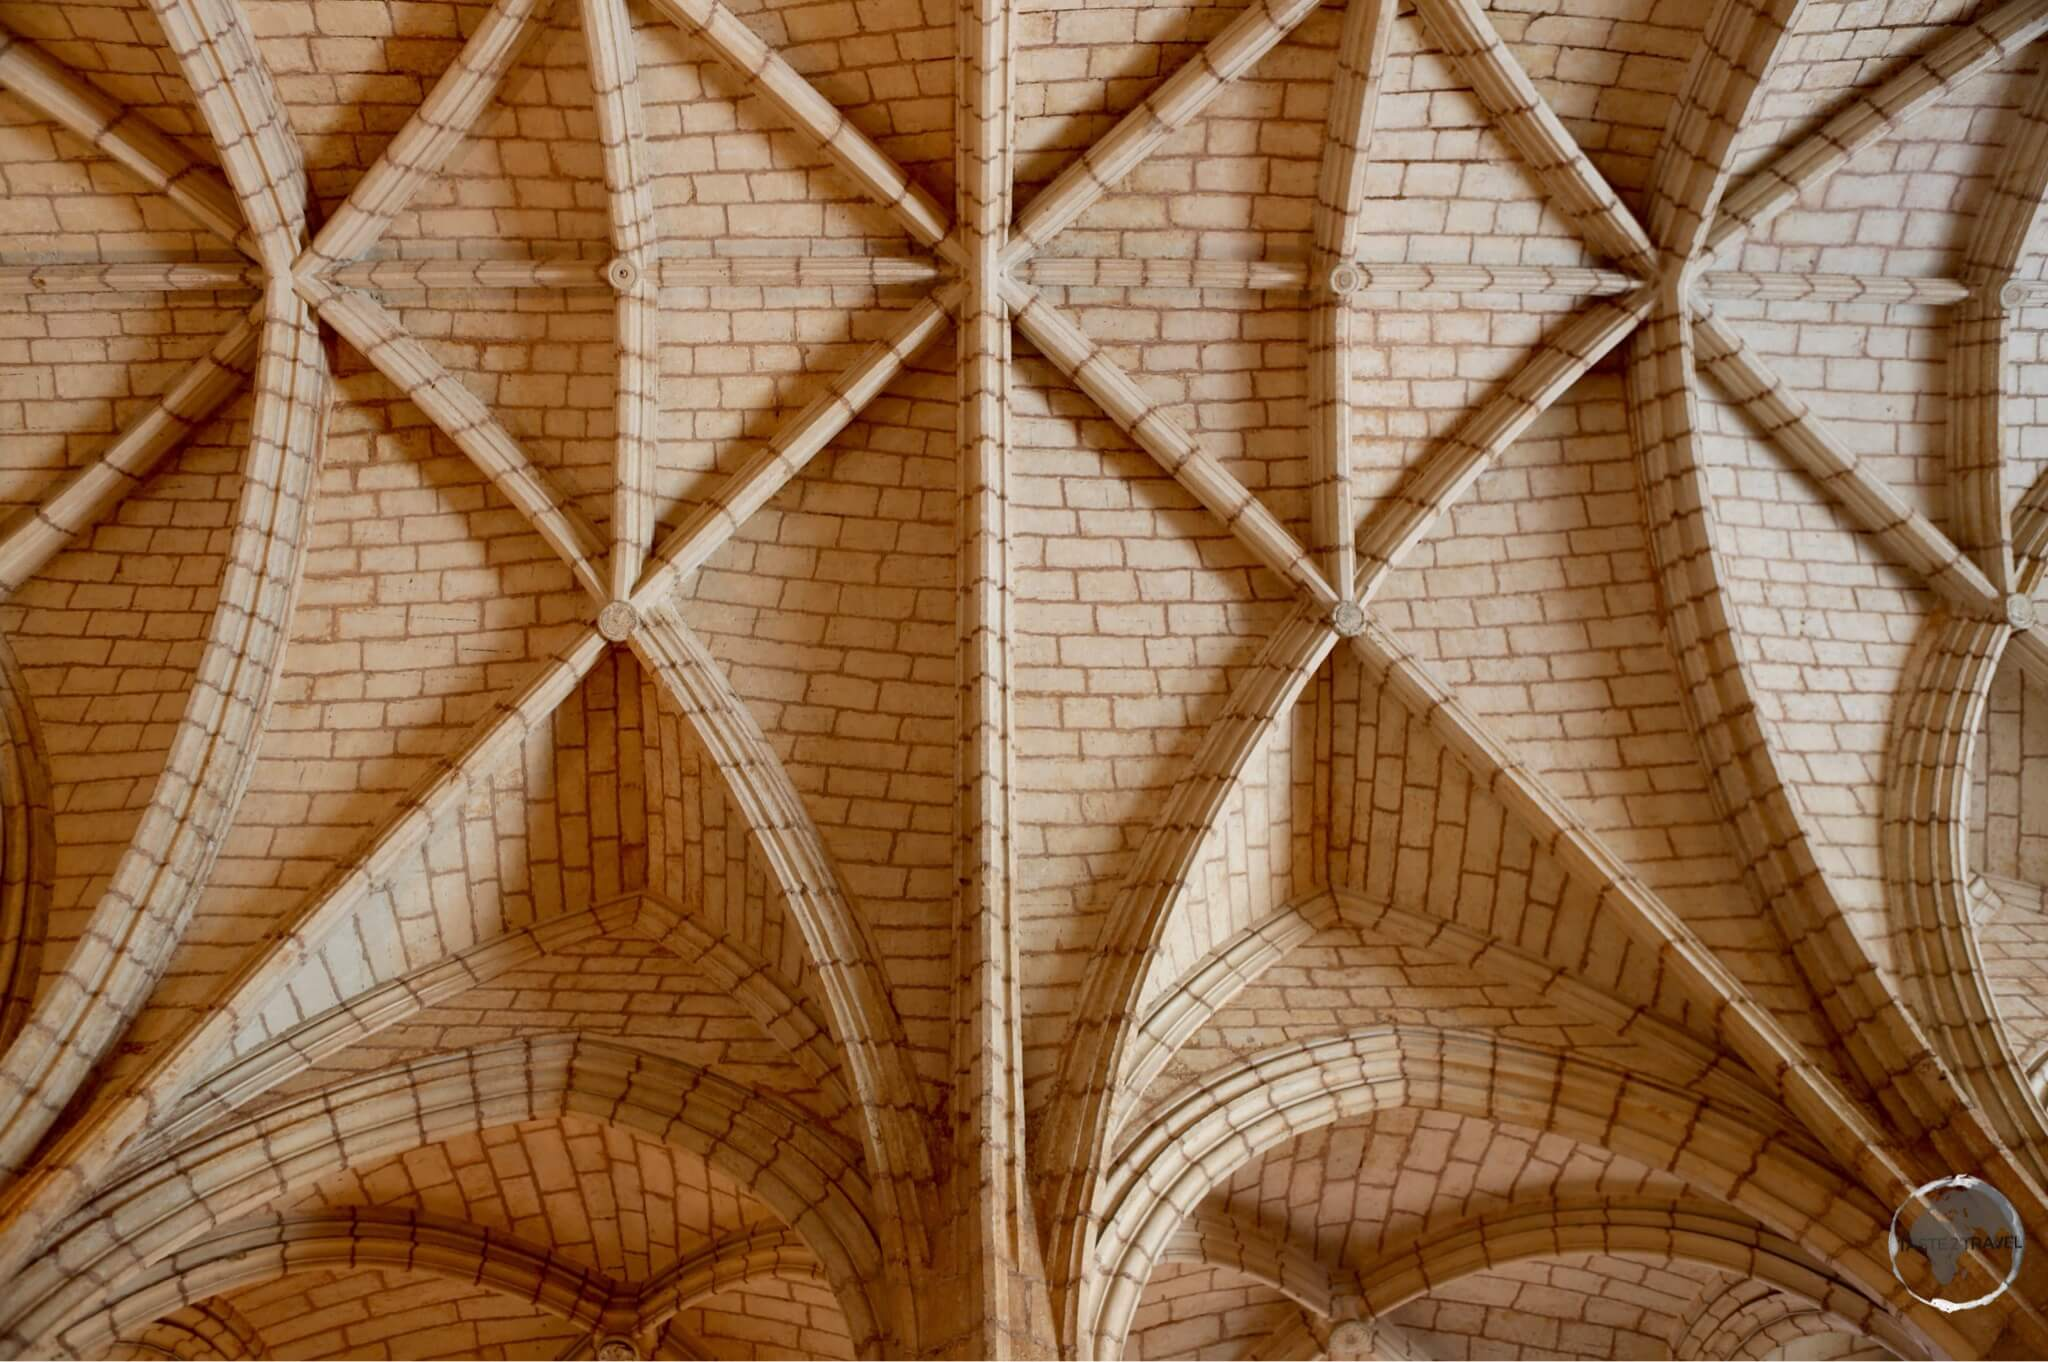 The vaulted ceiling of the Catedral Primada de América.